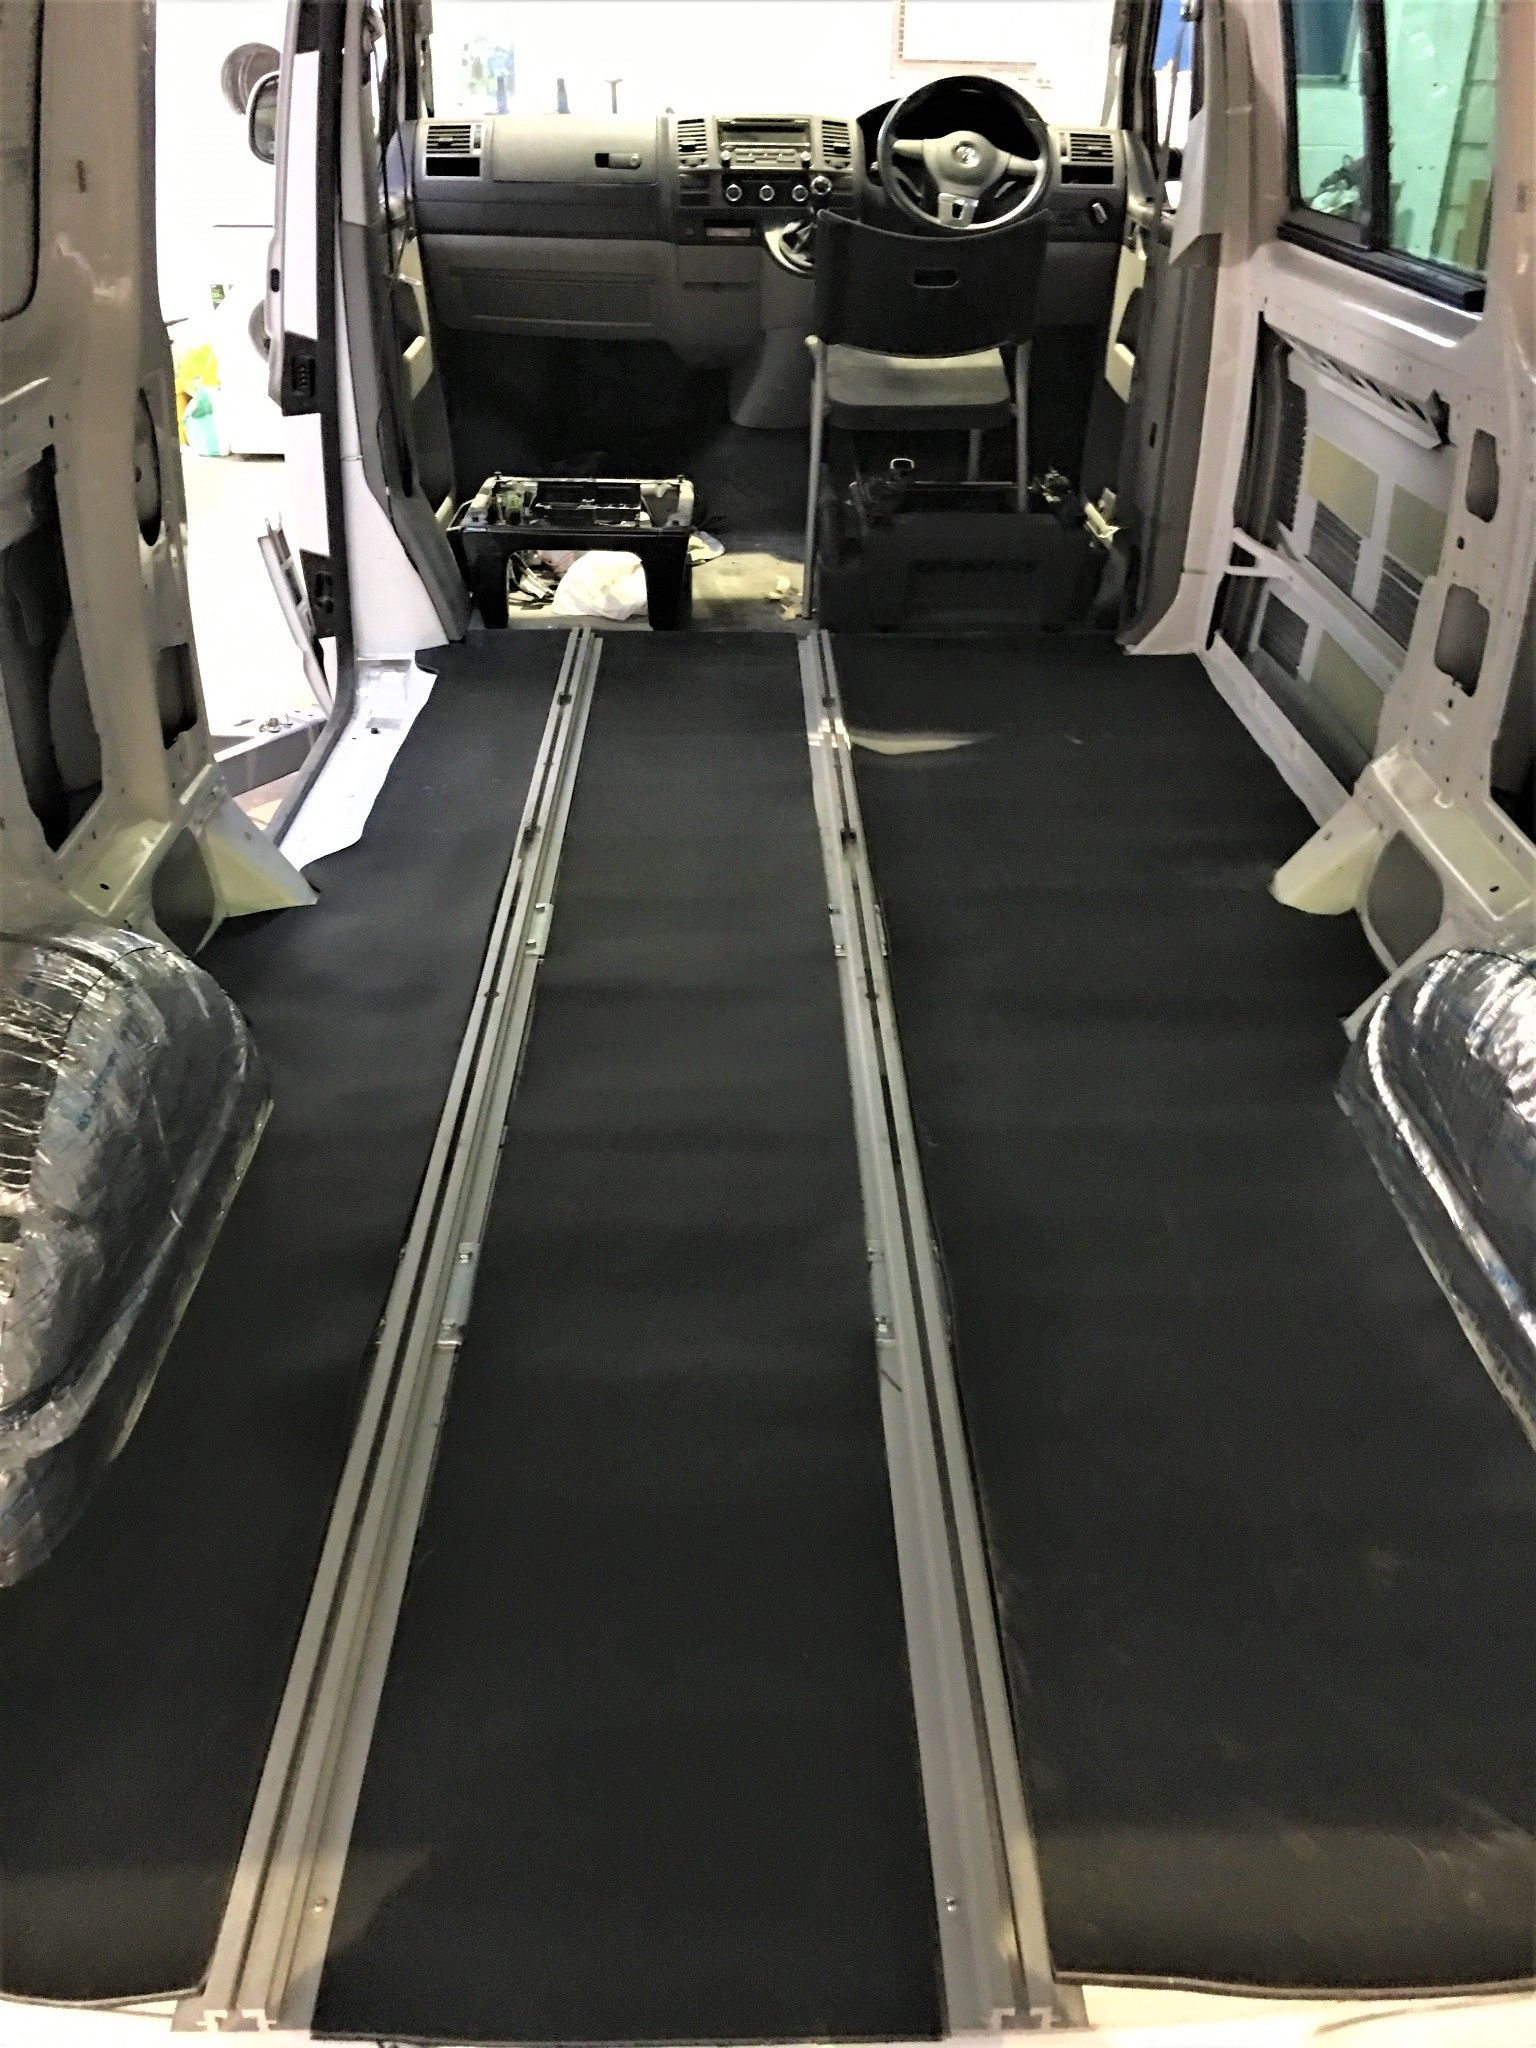 1 5m 178 16 7ft 178 Peacemat 6kg Vehicle Floor Sound Deadening